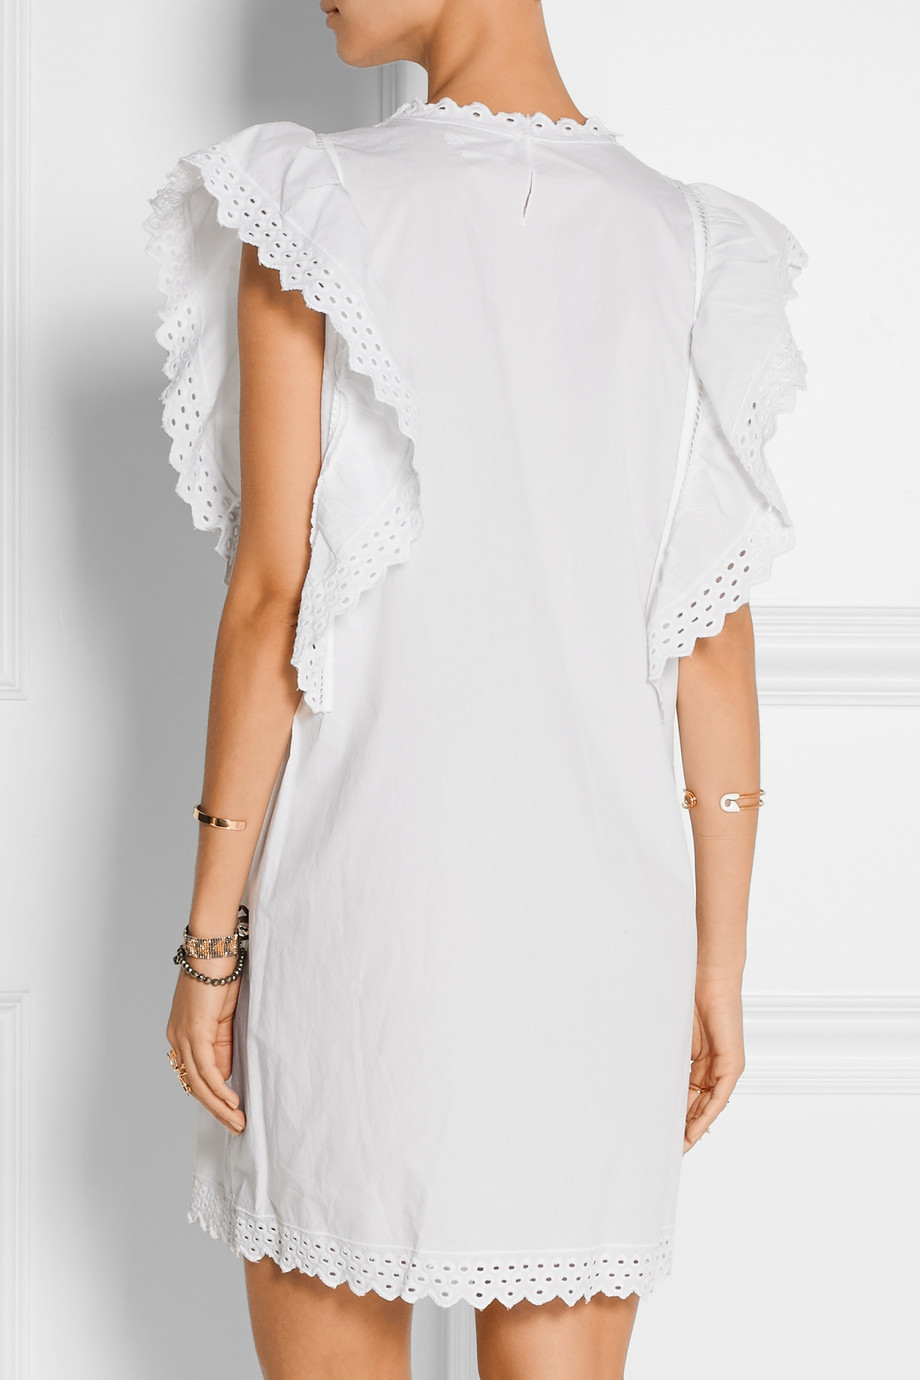 201 Toile Isabel Marant Scarla Eyelet Cotton Mini Dress In